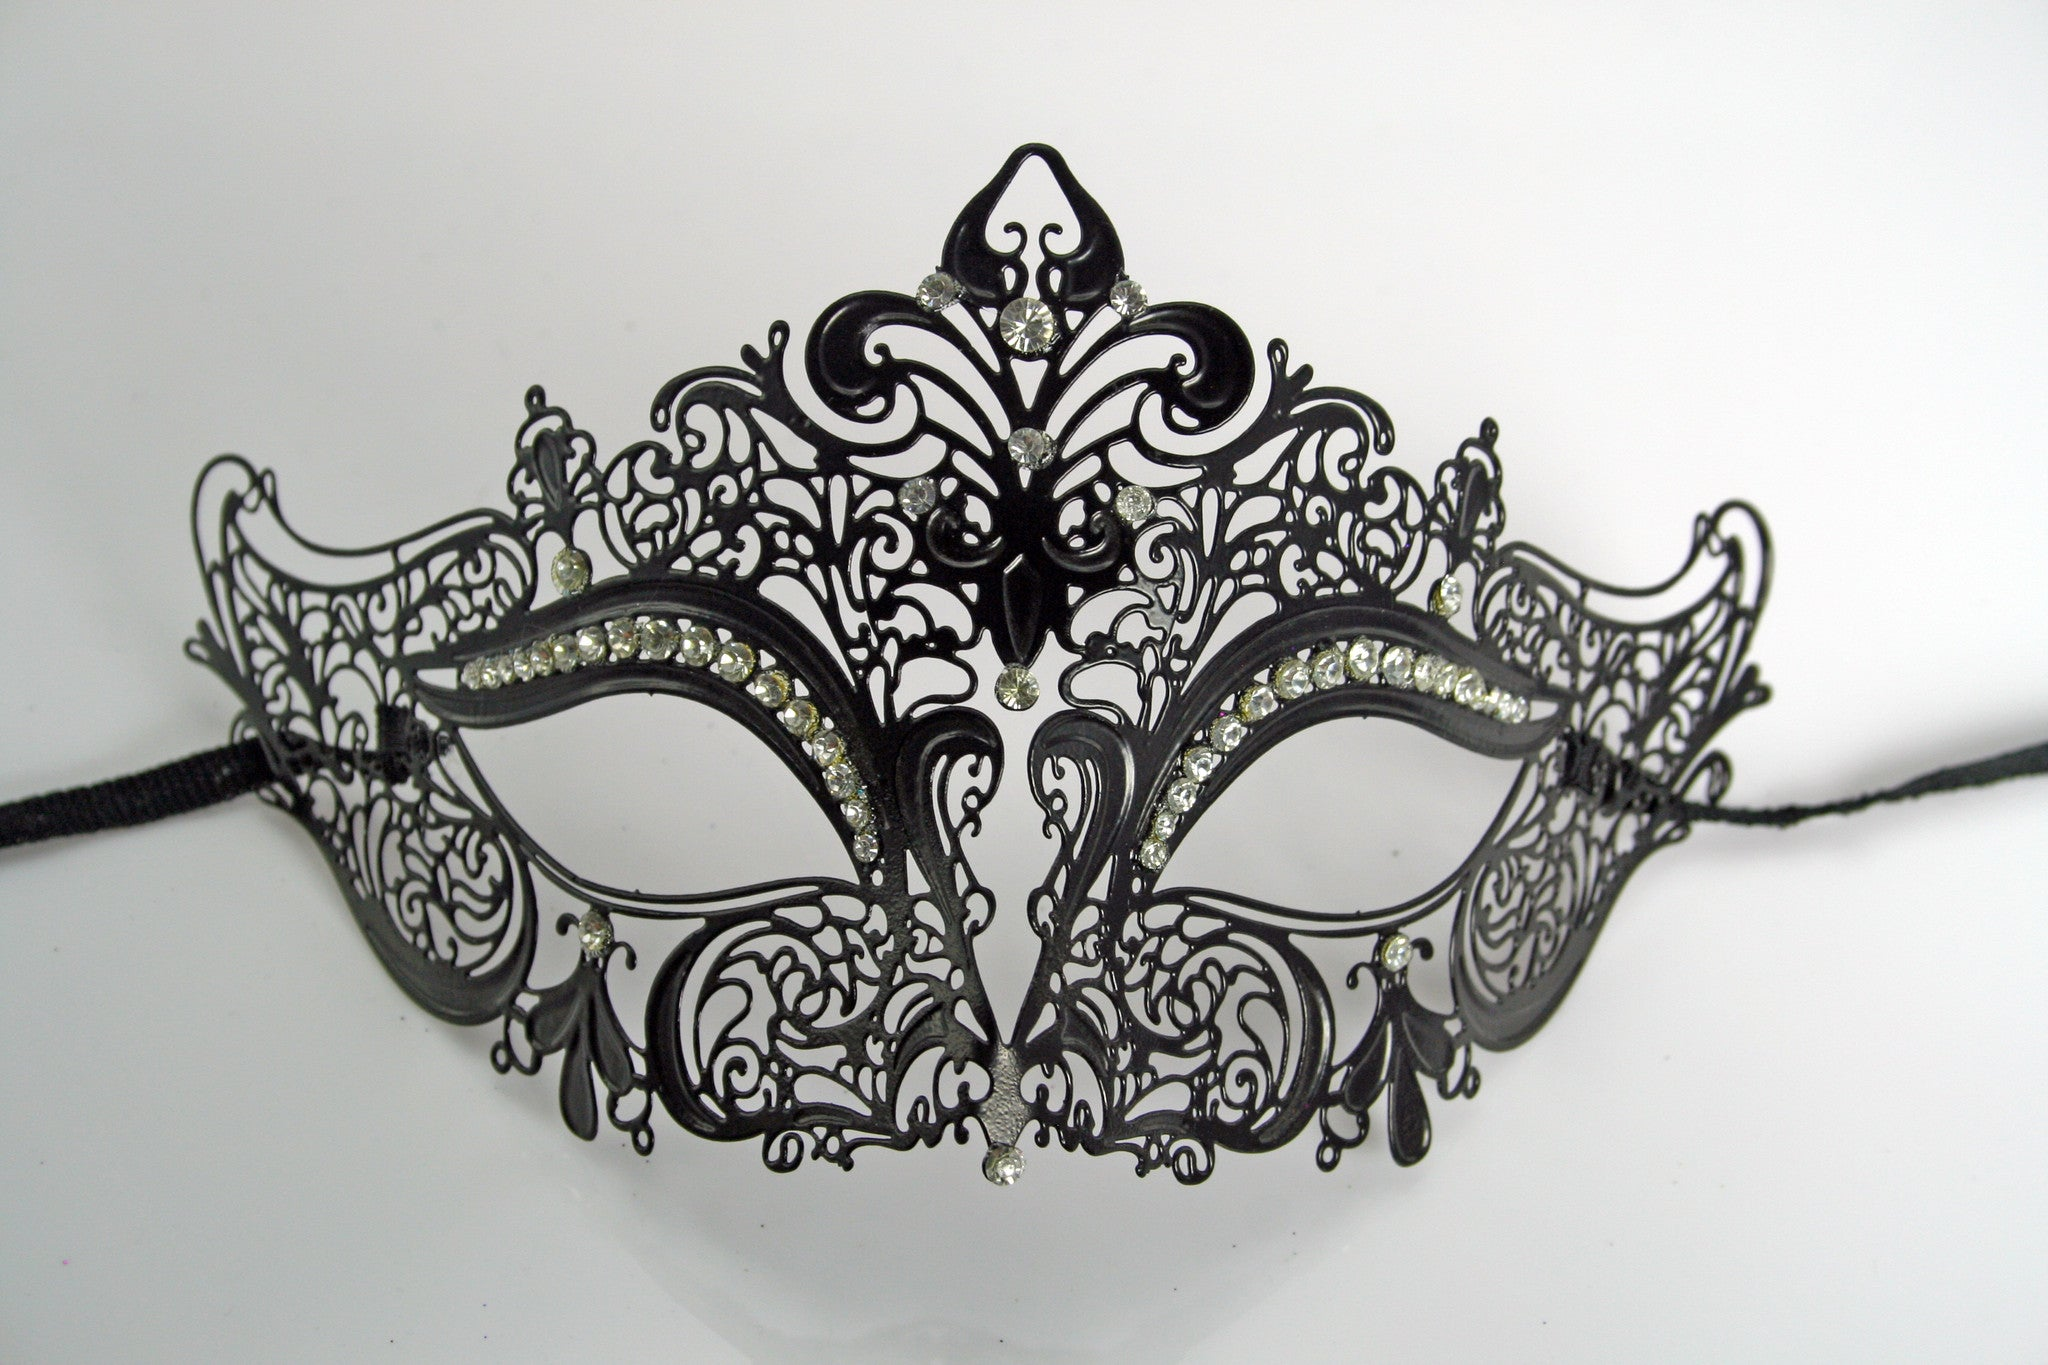 MK84 - Black Metal Mask with Diamantes - Min 12 Order - Tamarr Imports Innovative Giftware Pty Ltd